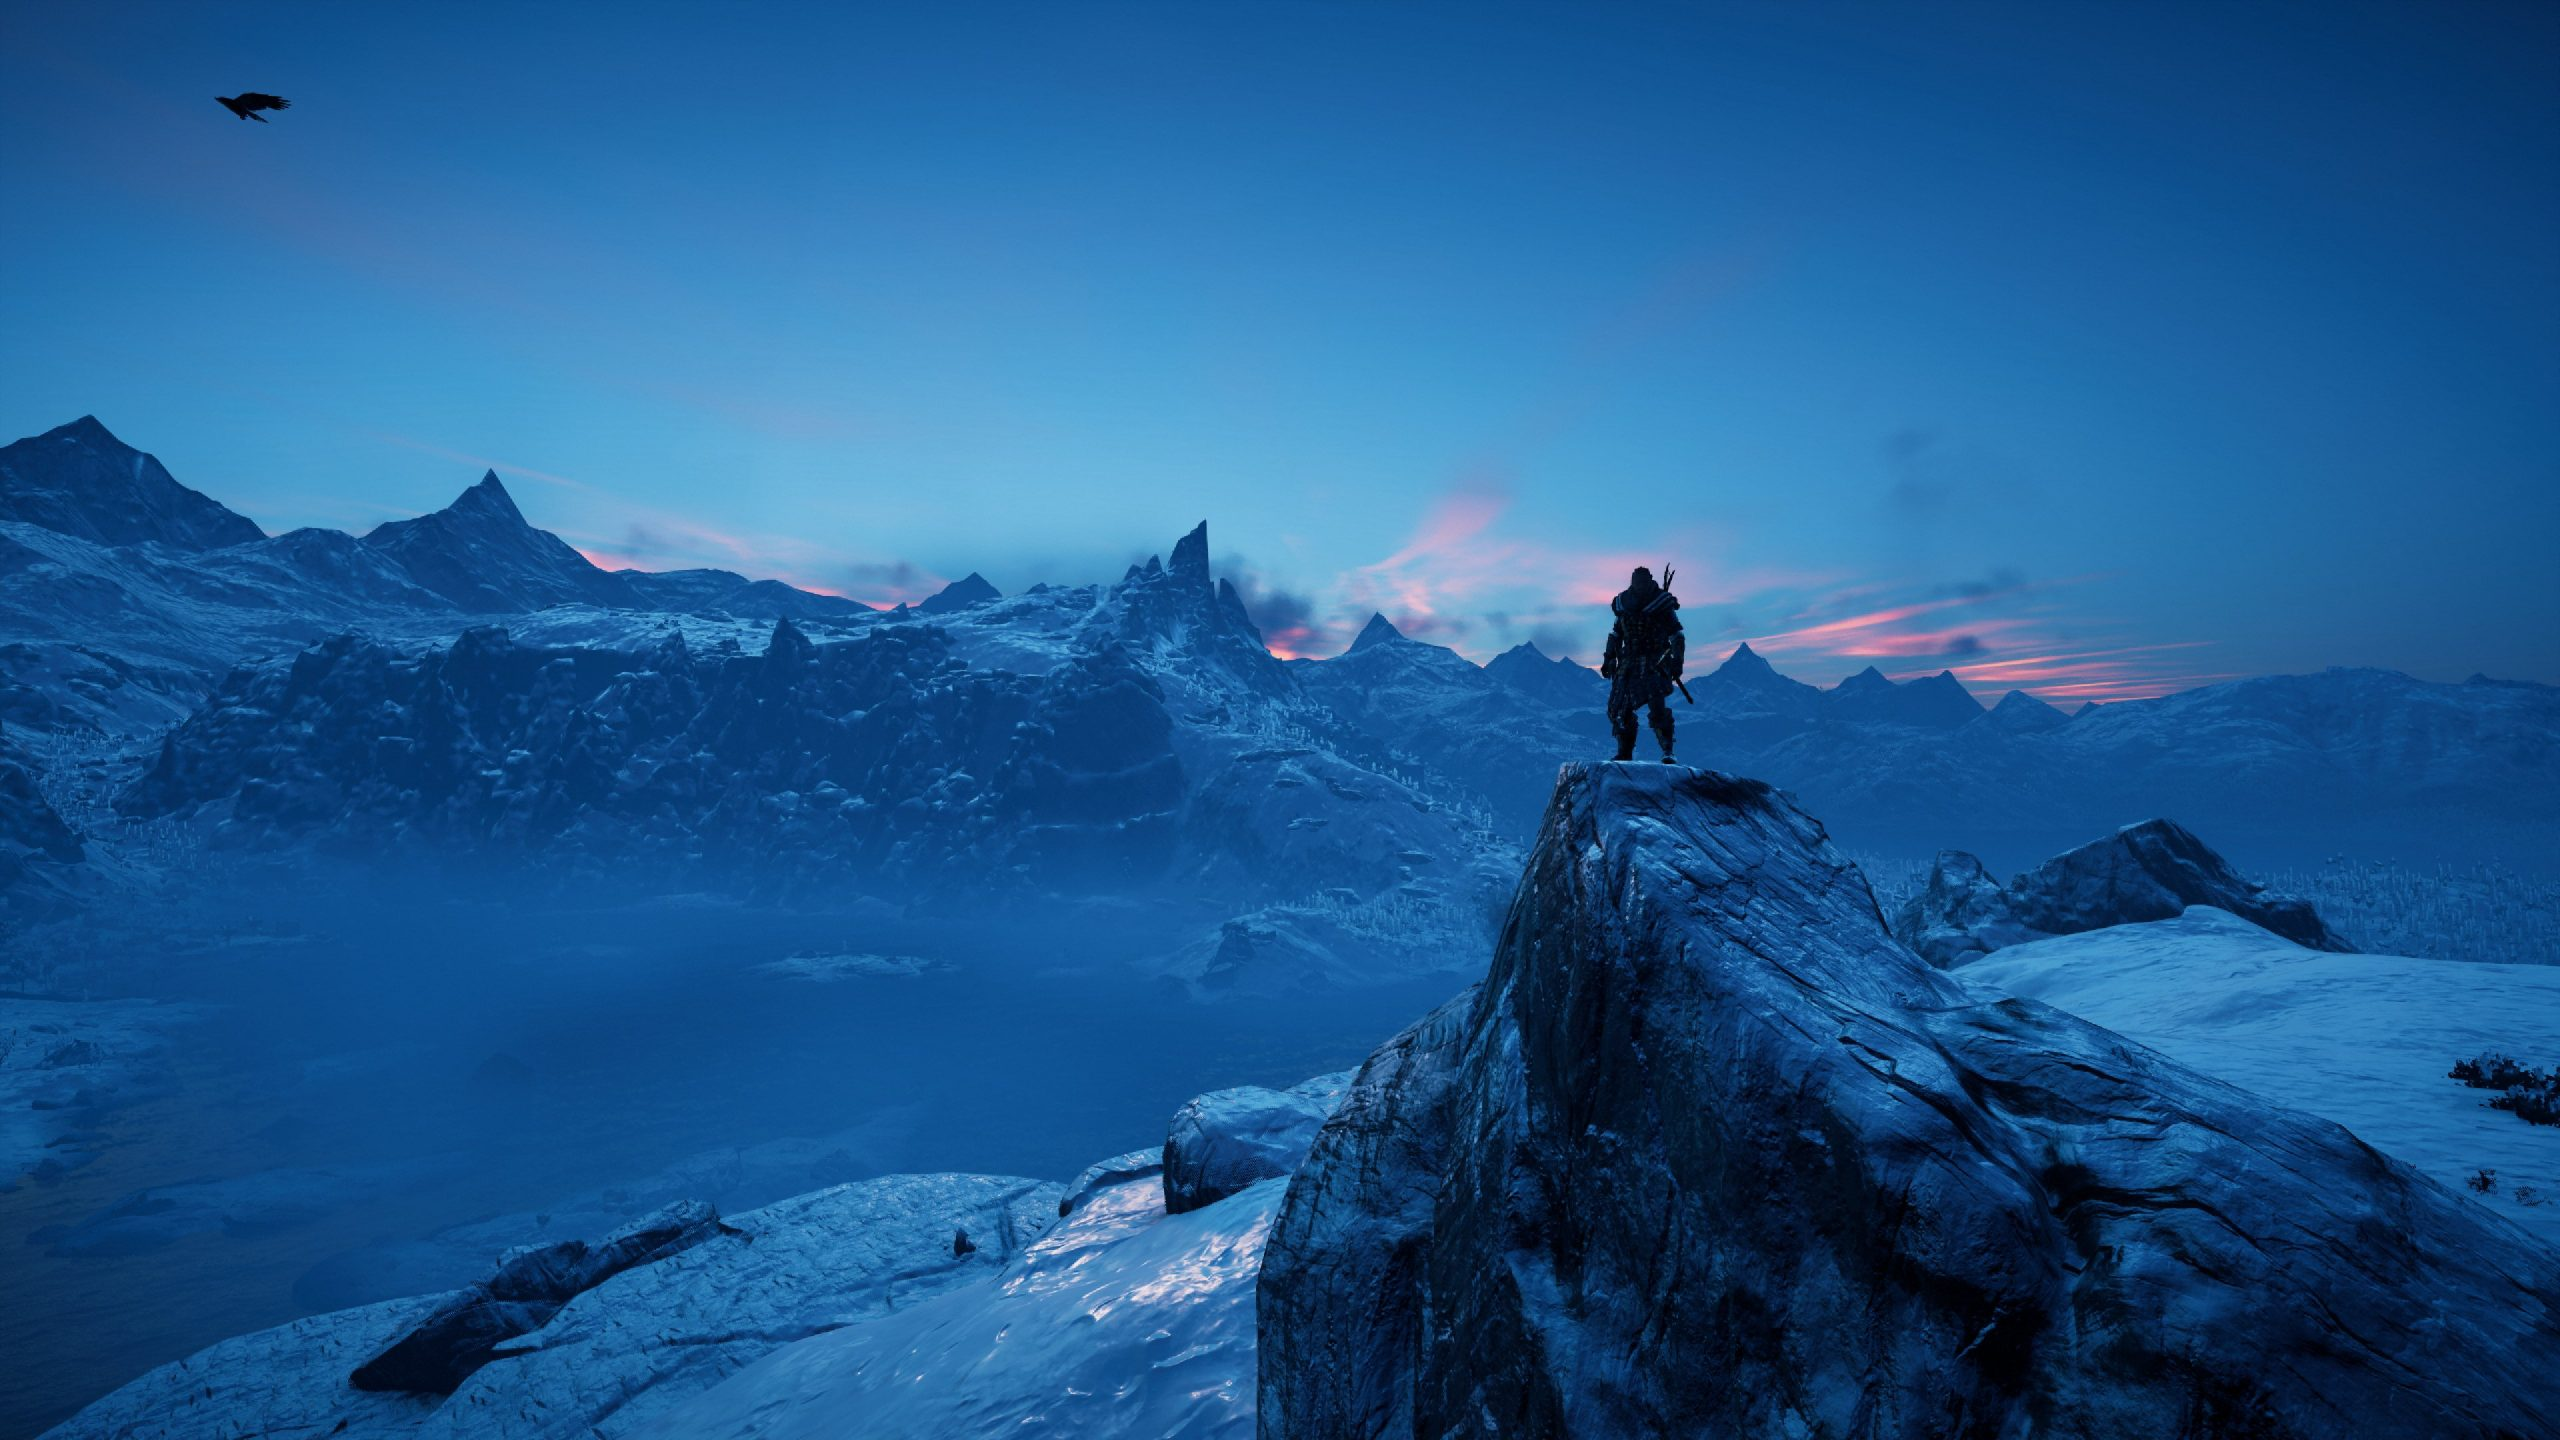 Assassin's Creed Valhalla: A (mostly) Spoiler-Free Review